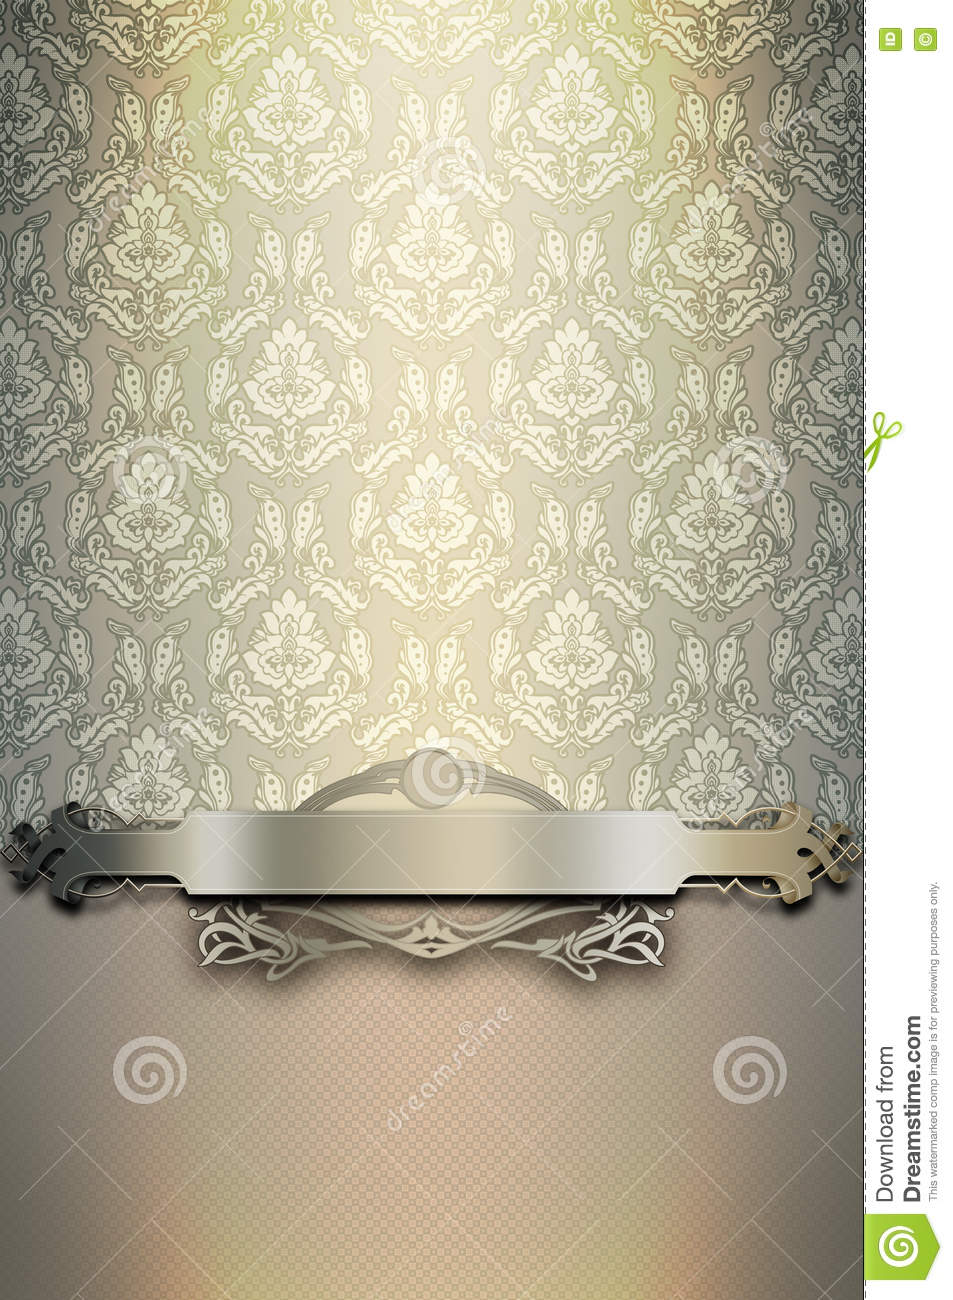 Old Fashioned Book Cover : Decorative background with patterns and elegant border